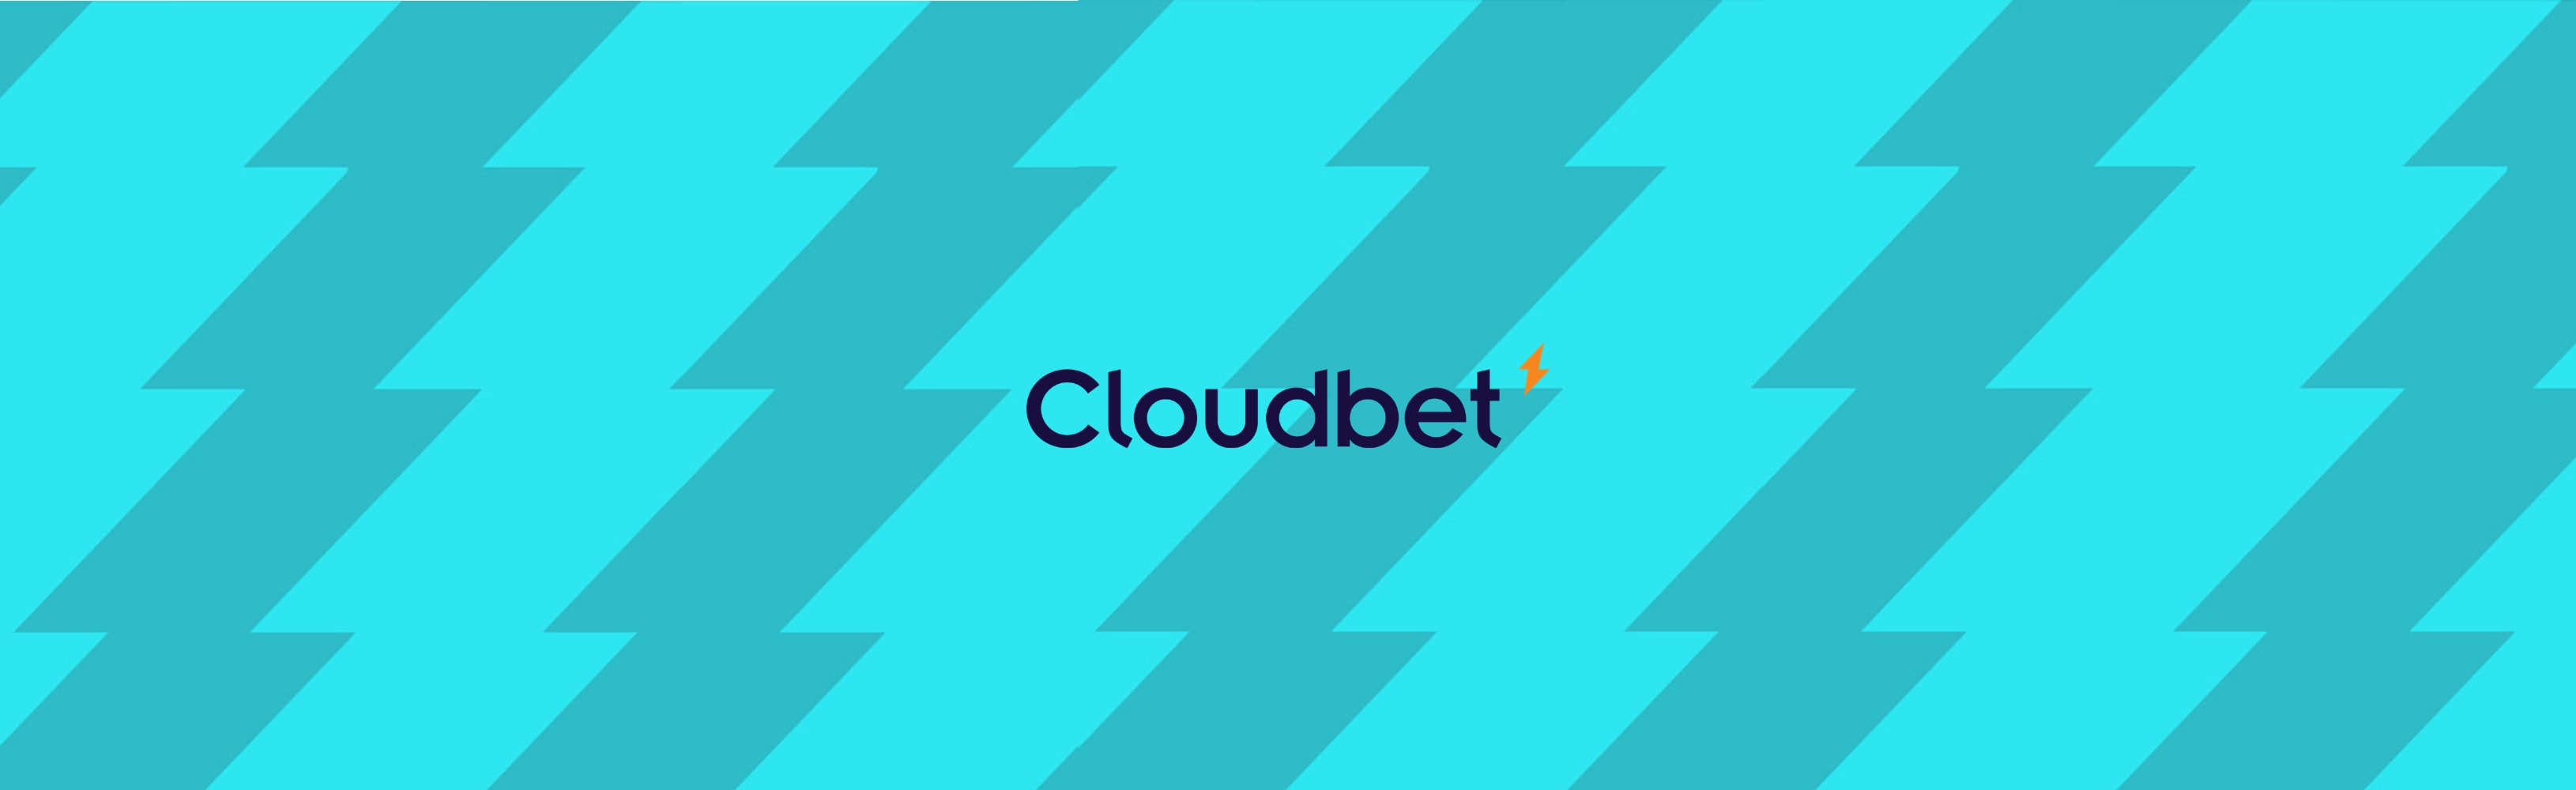 Cloudbet: Always growing